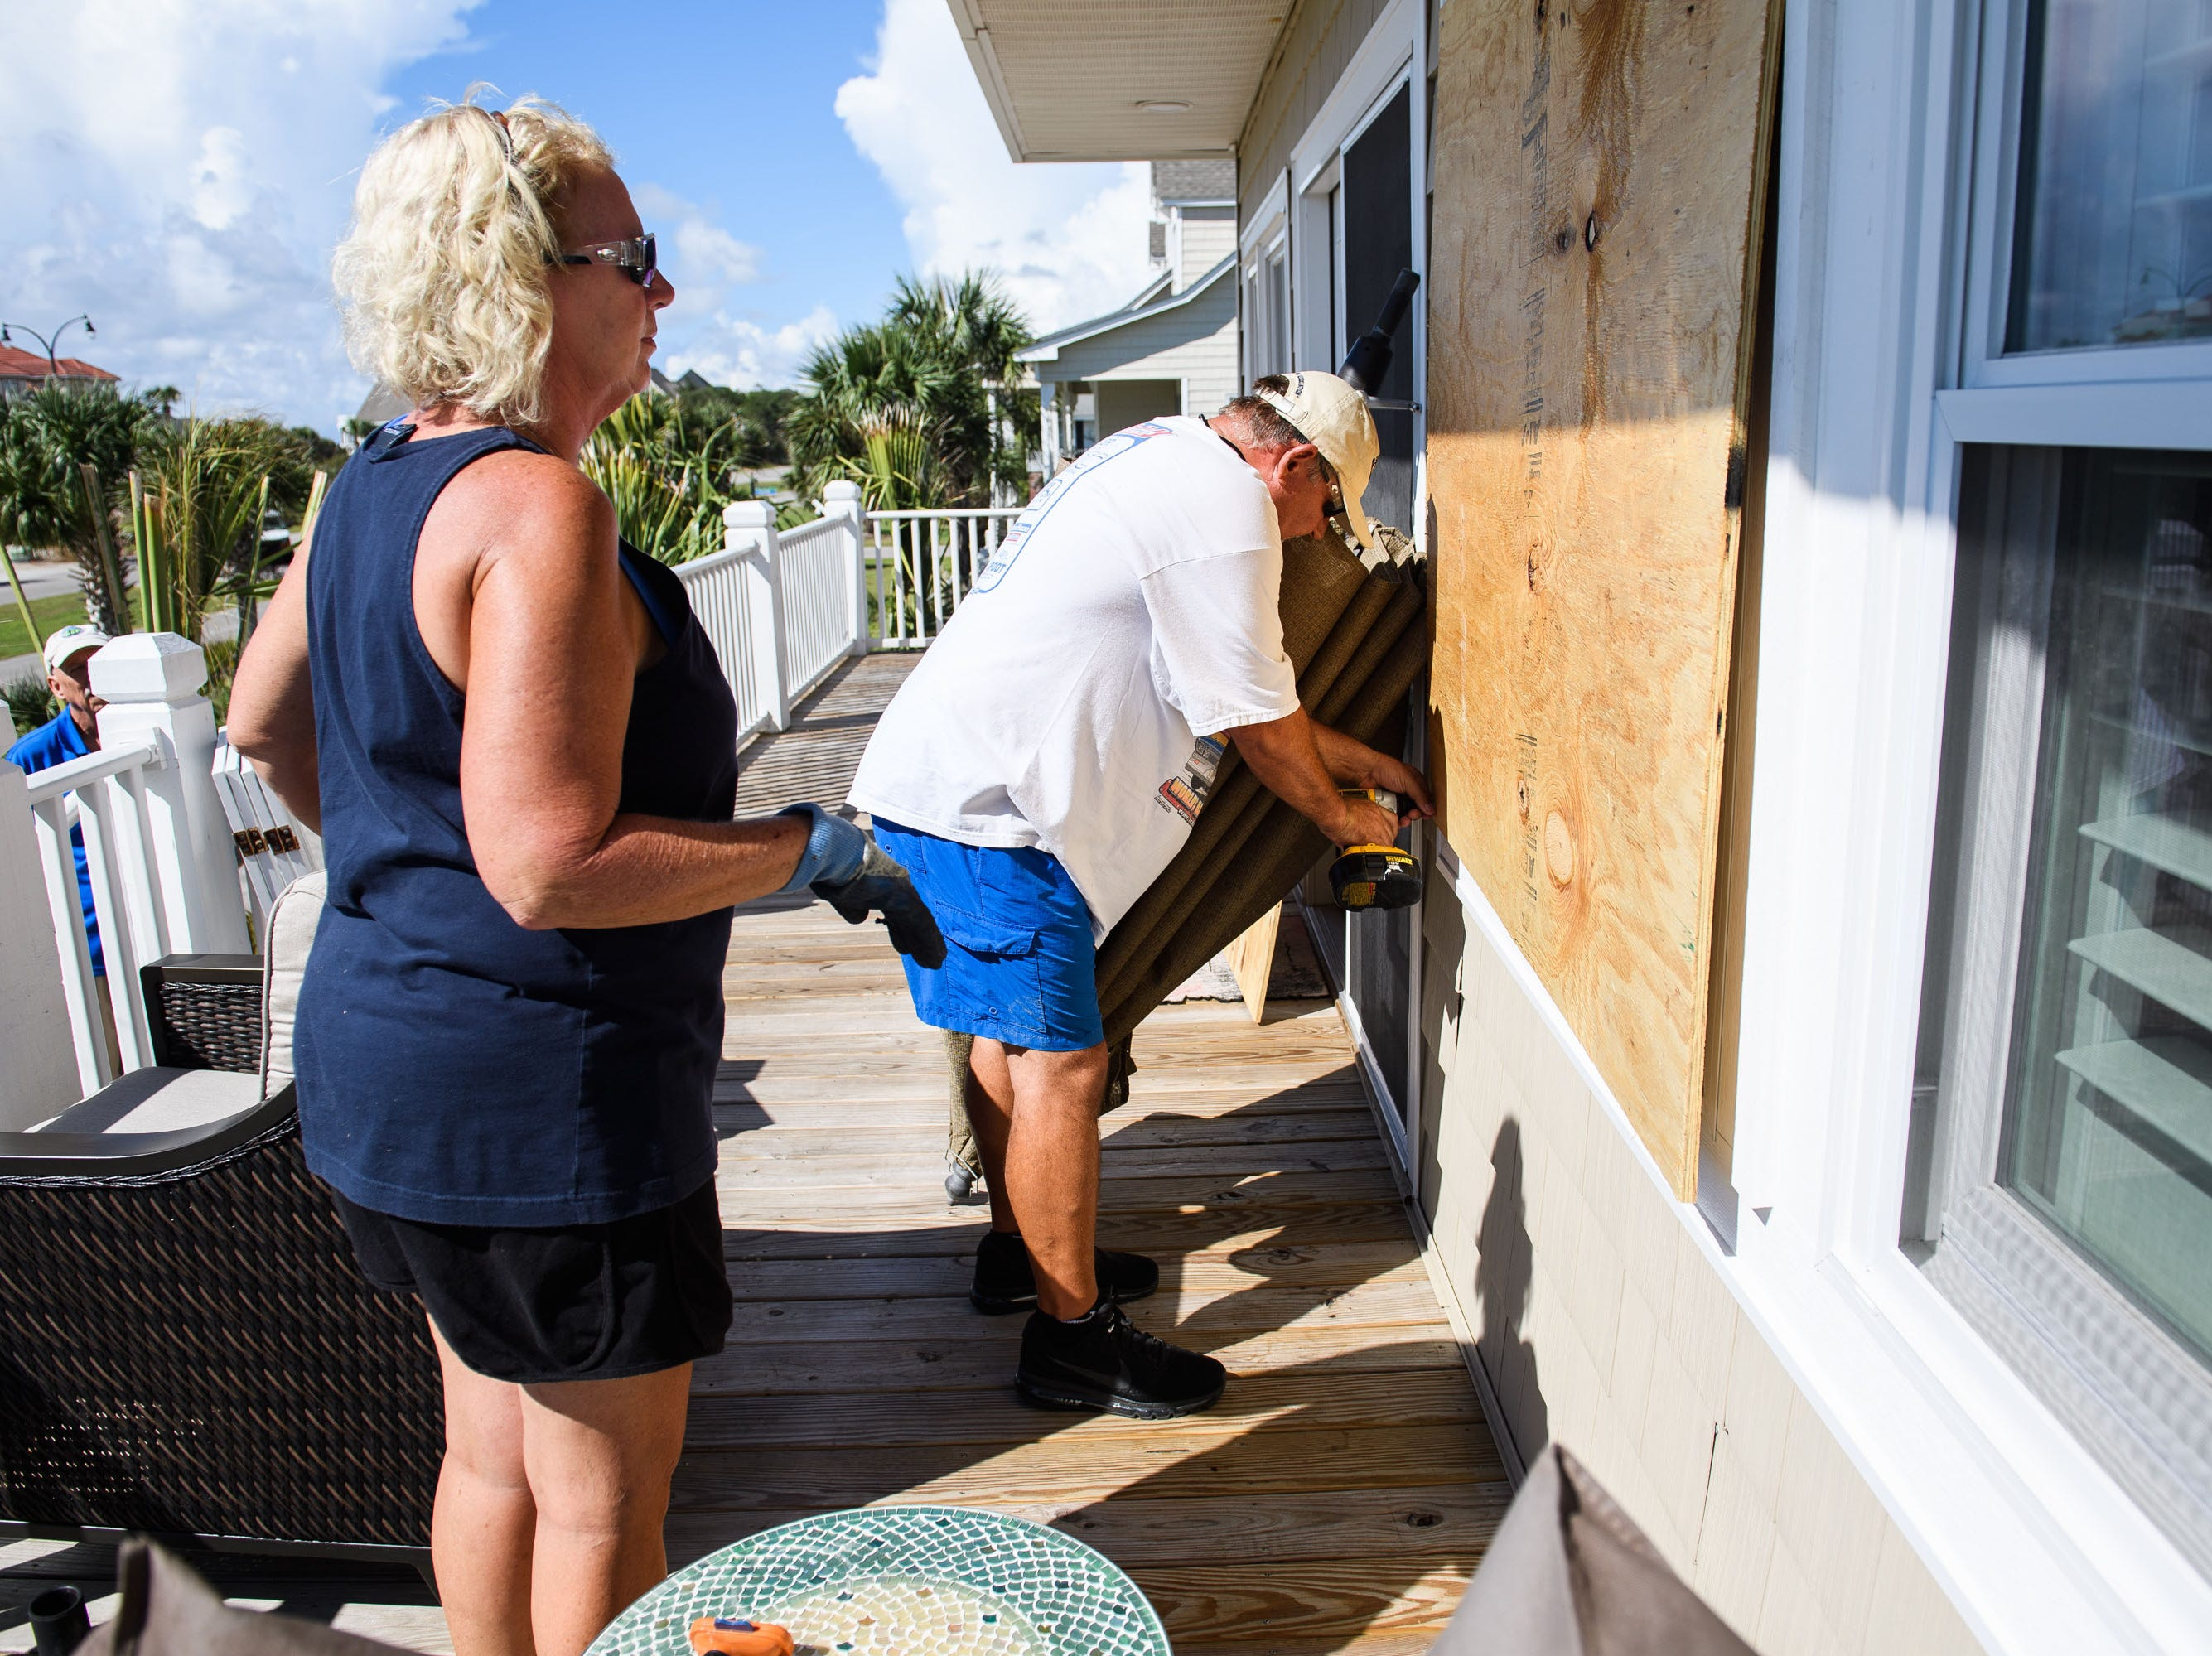 Sept. 11, 2018; North Myrtle Beach, SC, USA; Angie Travis and her husband Jeff place large piece of plywood over a window on their vacation home as they prepare for Hurricane Florence on Tuesday, Sept. 11, 2018.